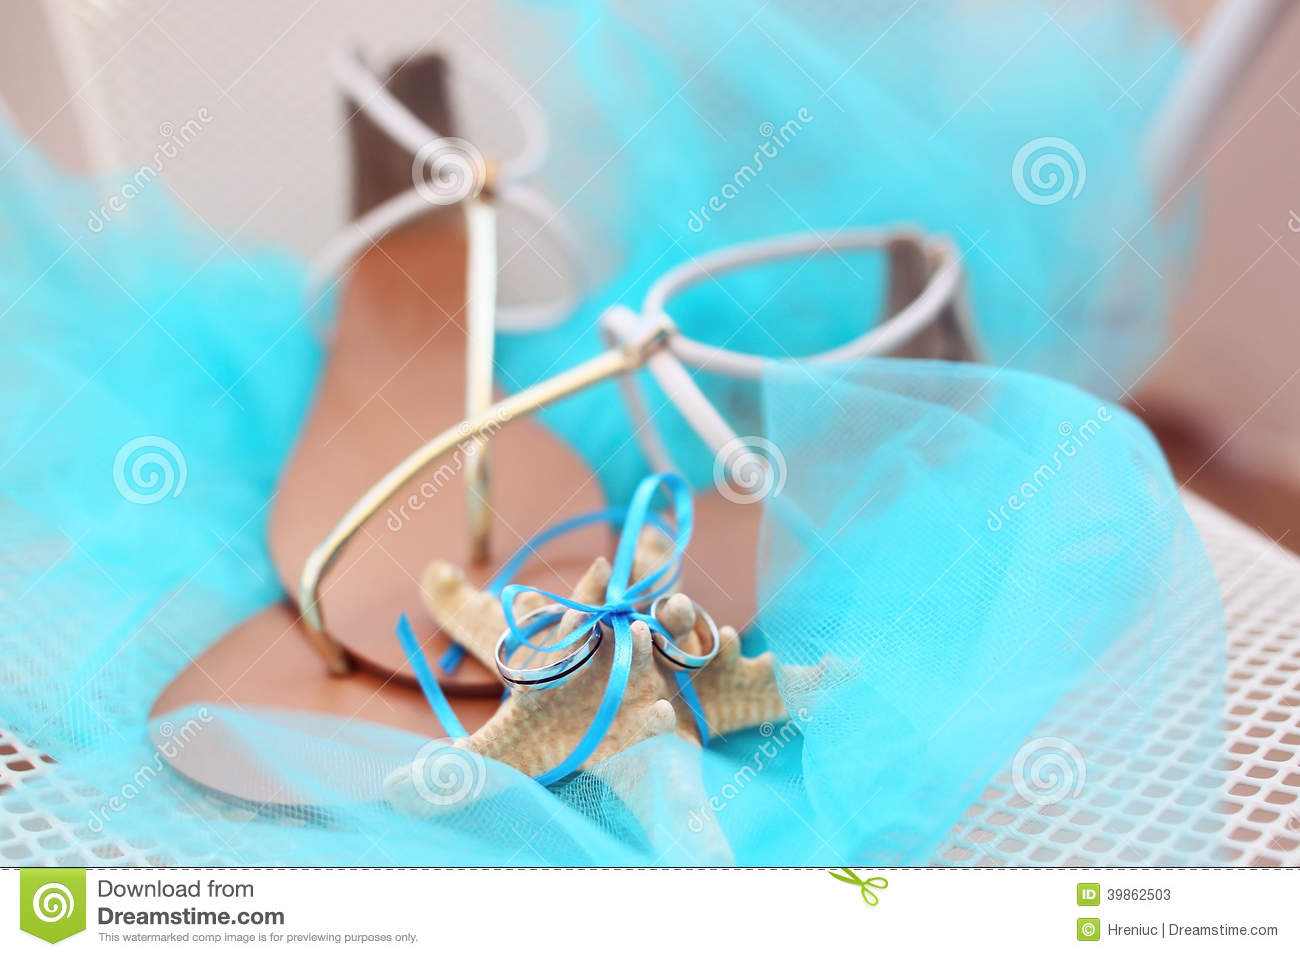 73bcc7f6bf73a Wedding rings stock image. Image of propose